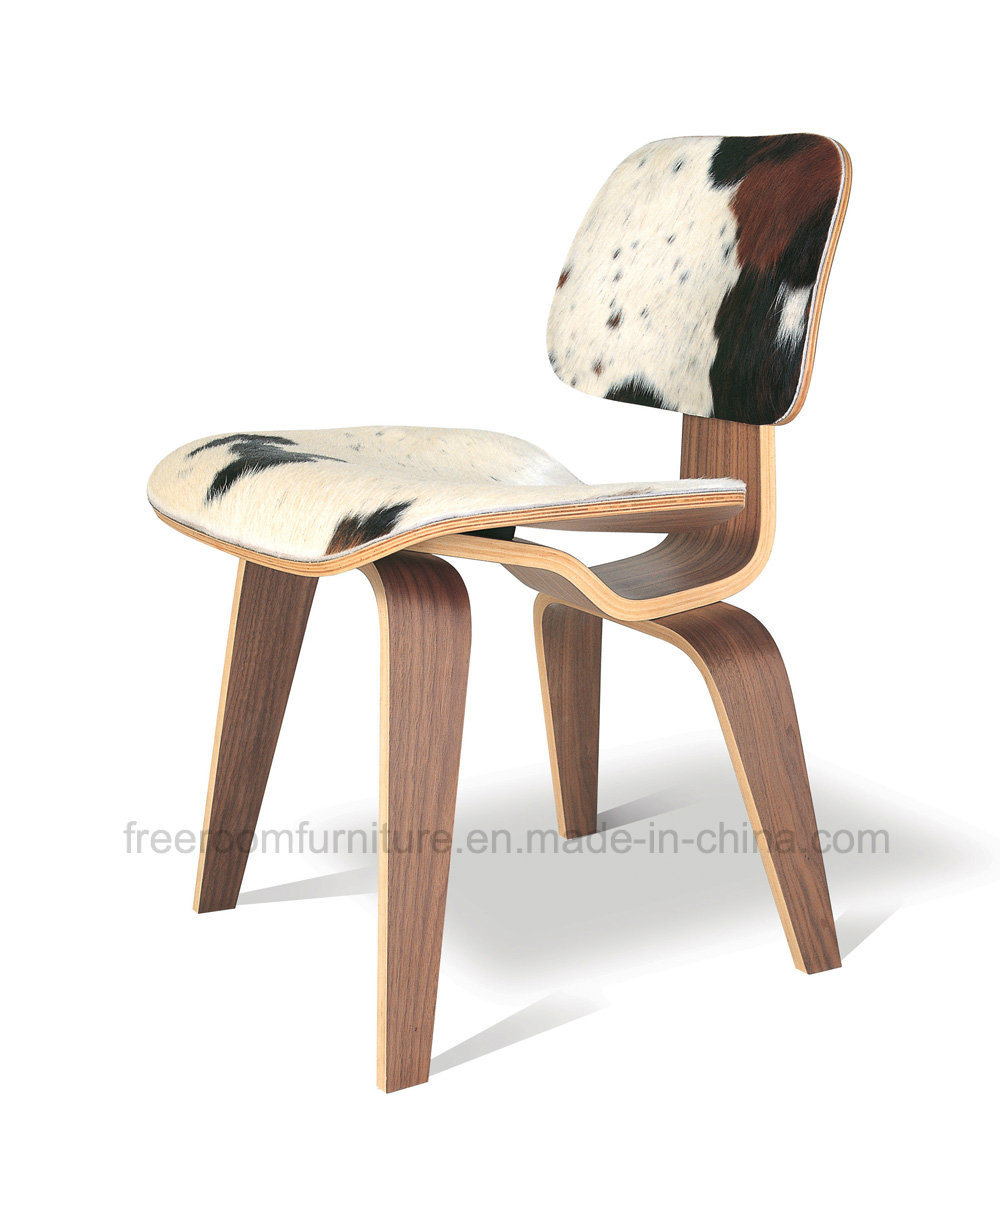 Eames Plywood Chair Hot Item Pony Skin Eames Plywood Chair